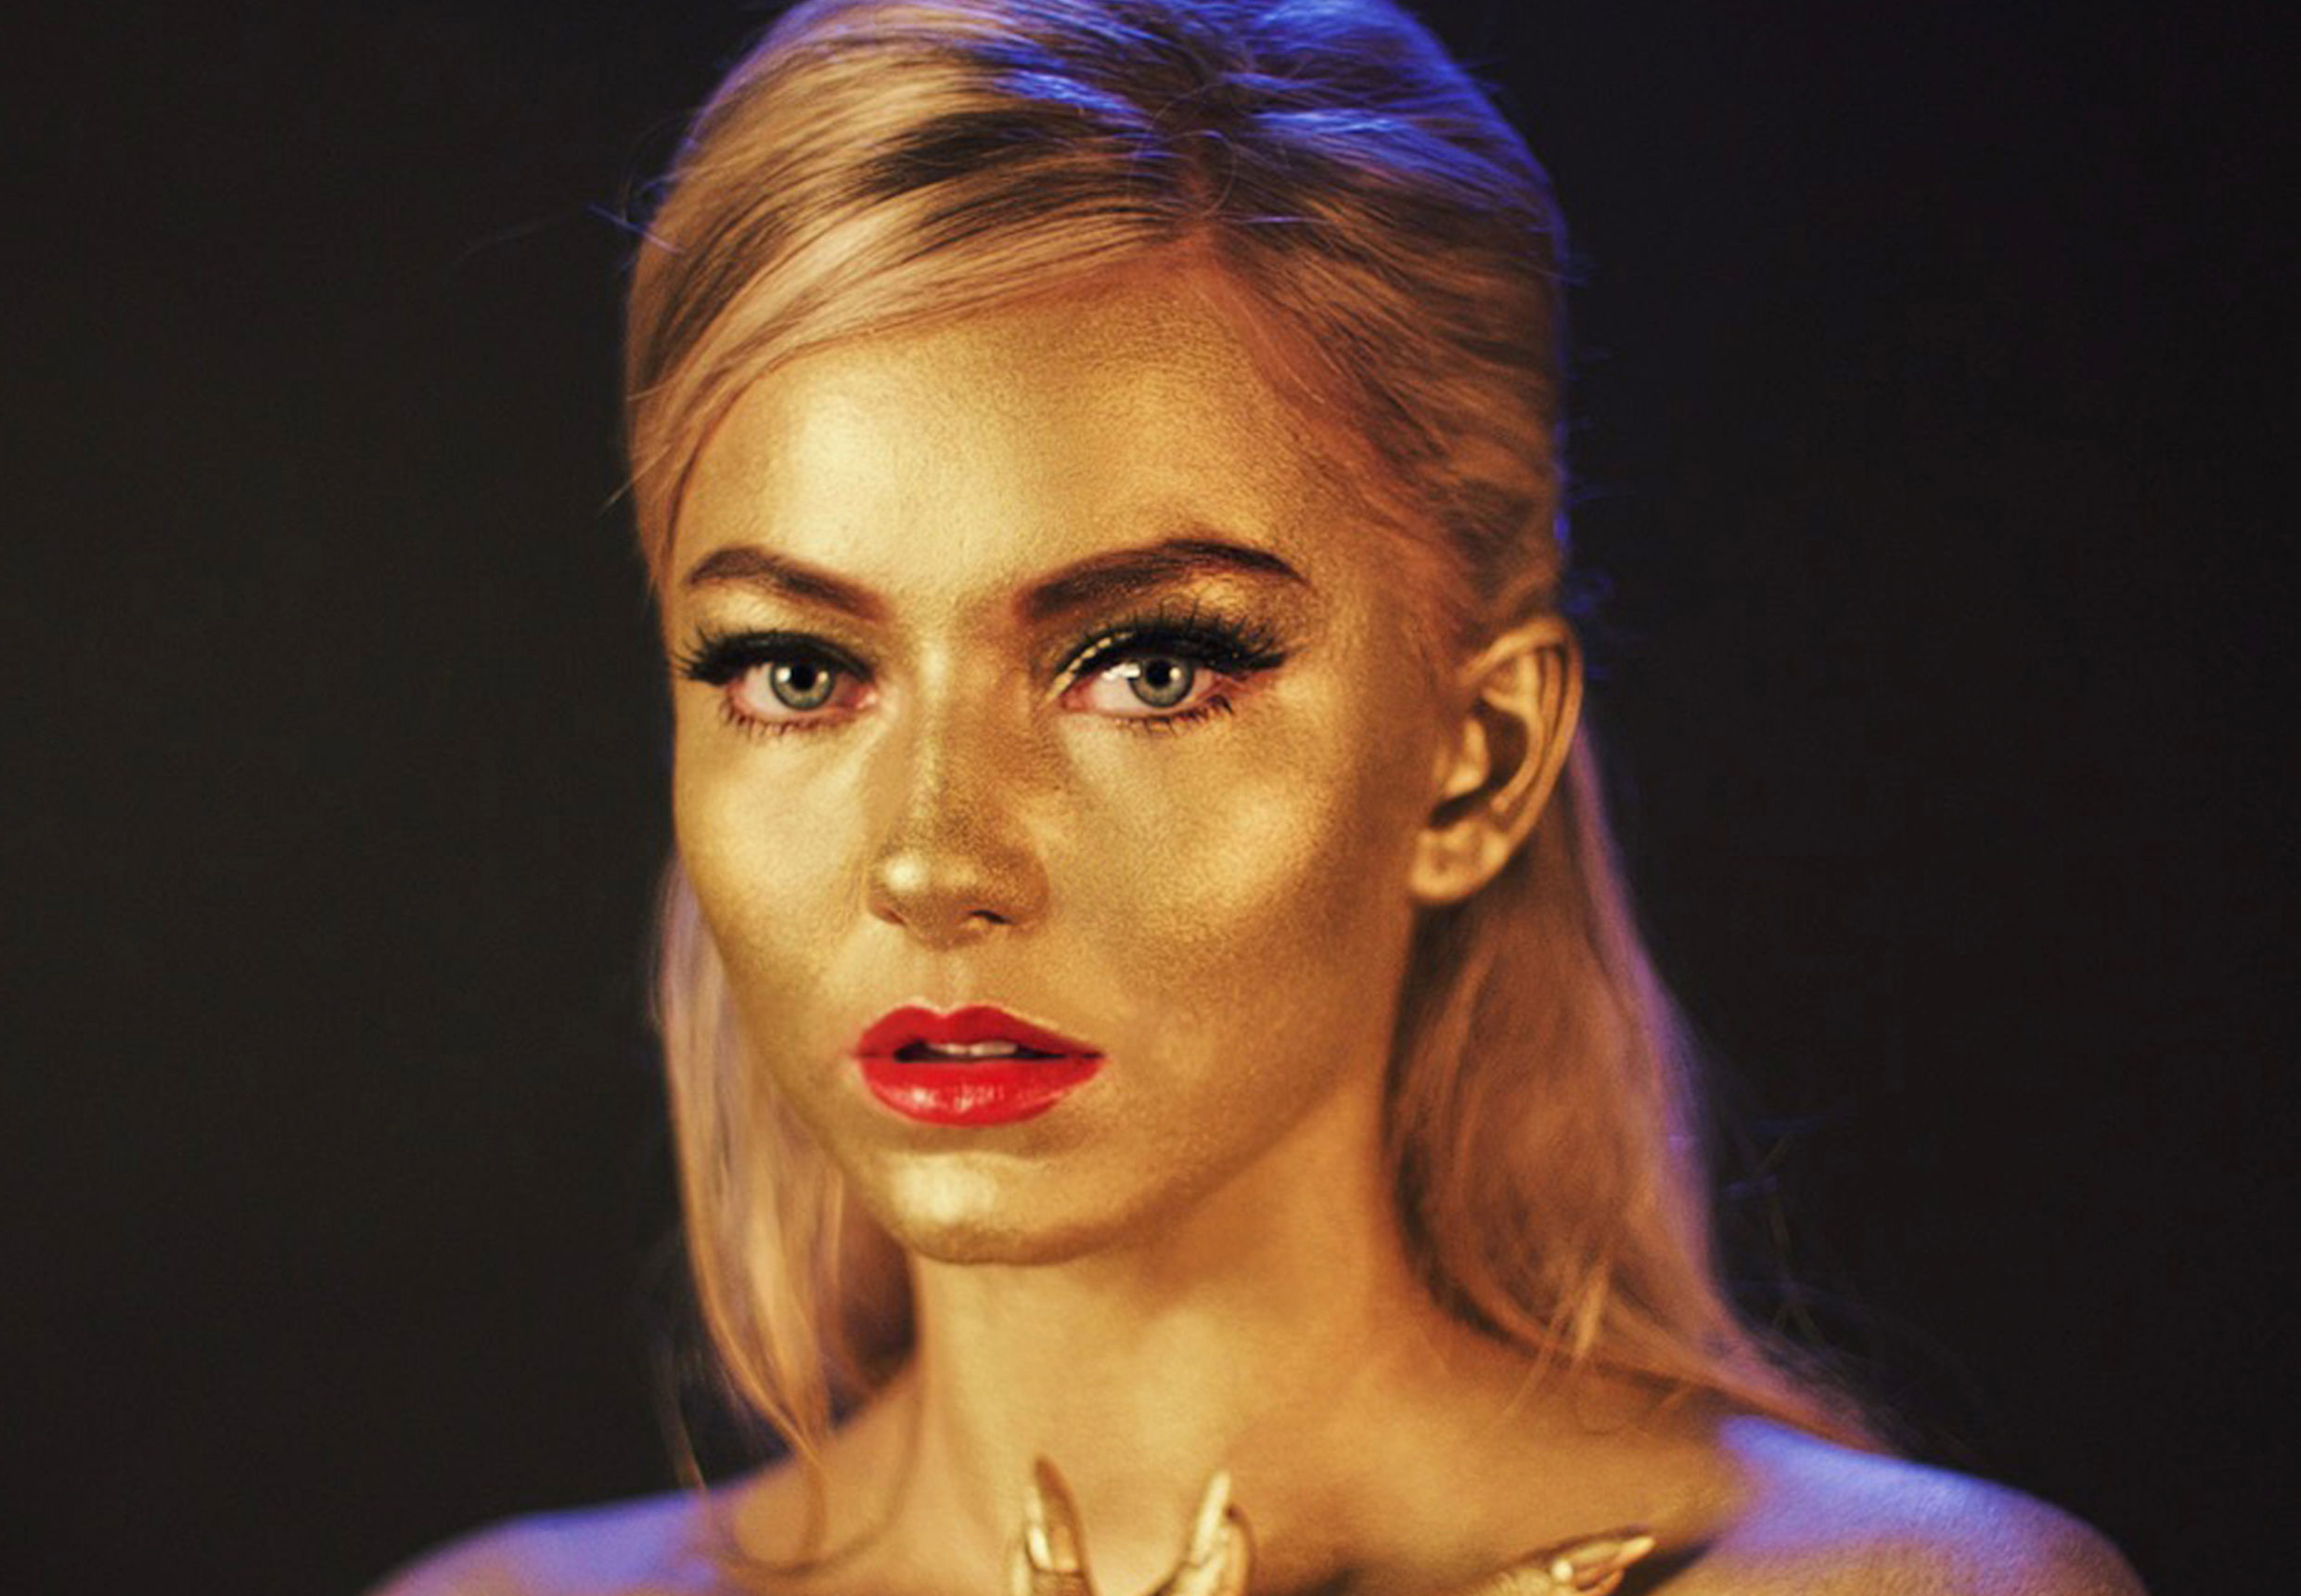 Astrid S offers up a spell-binding new track called 'Breathe'!